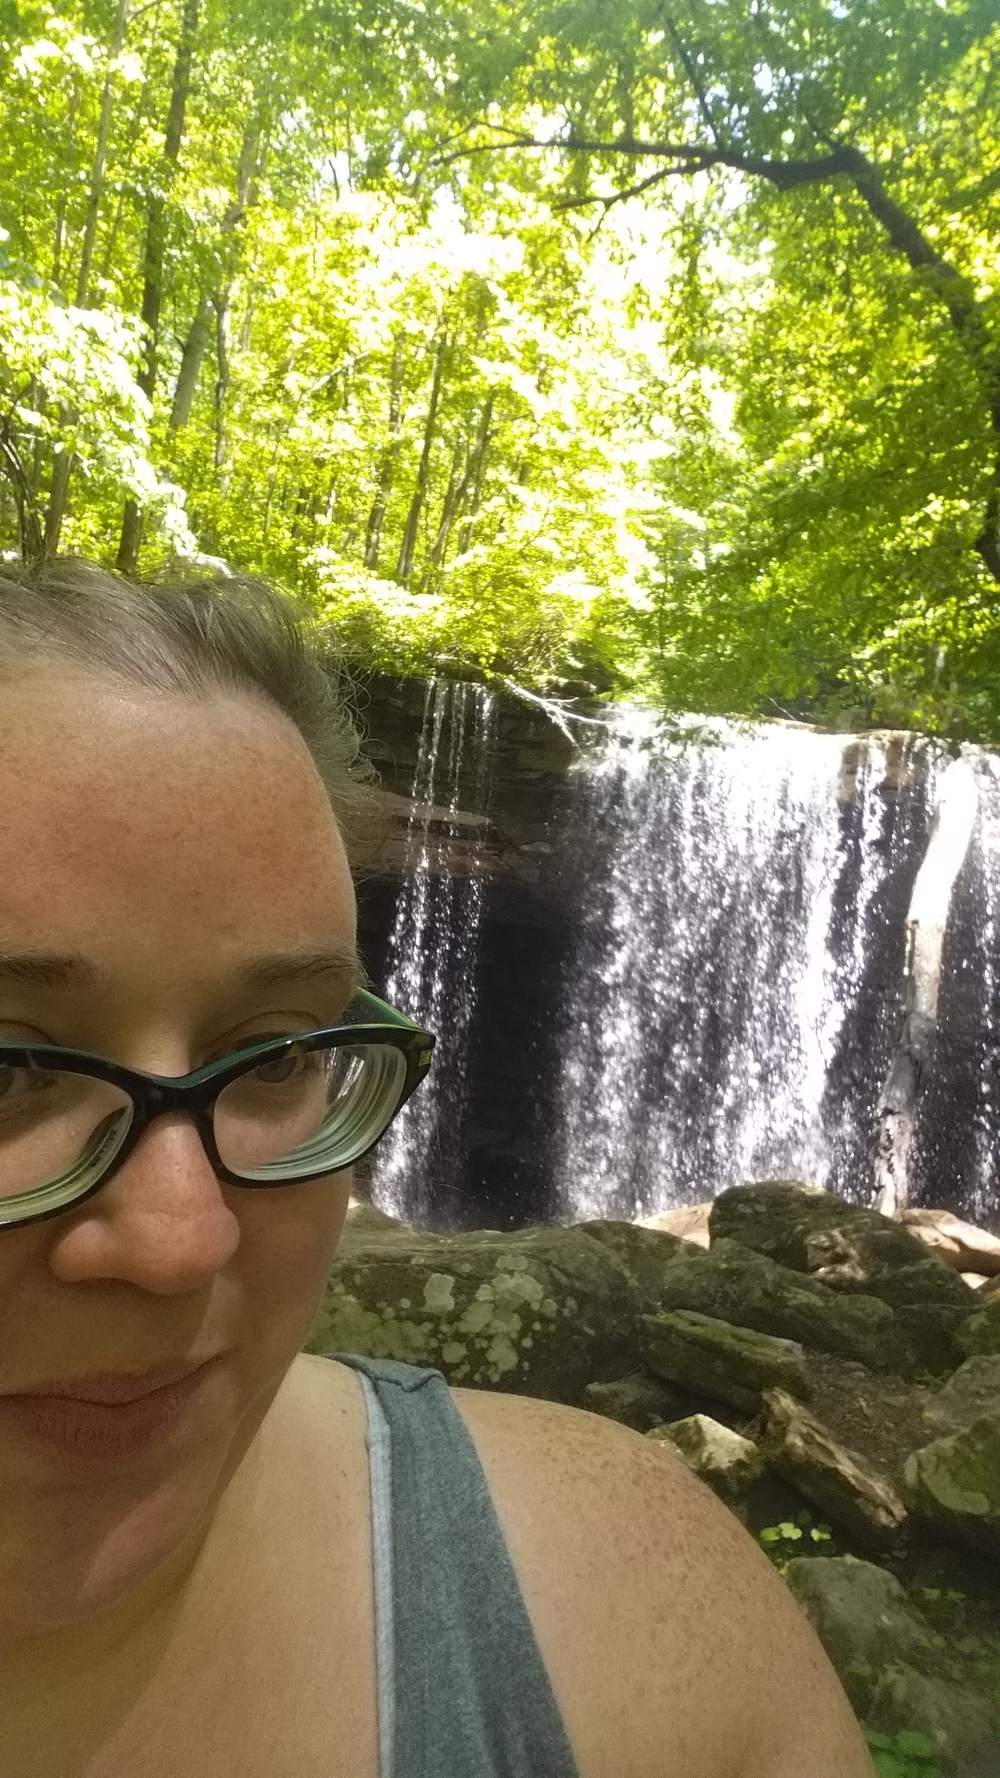 We lunched at Big Laurel Falls. It's about 2.5 - 3 miles in.